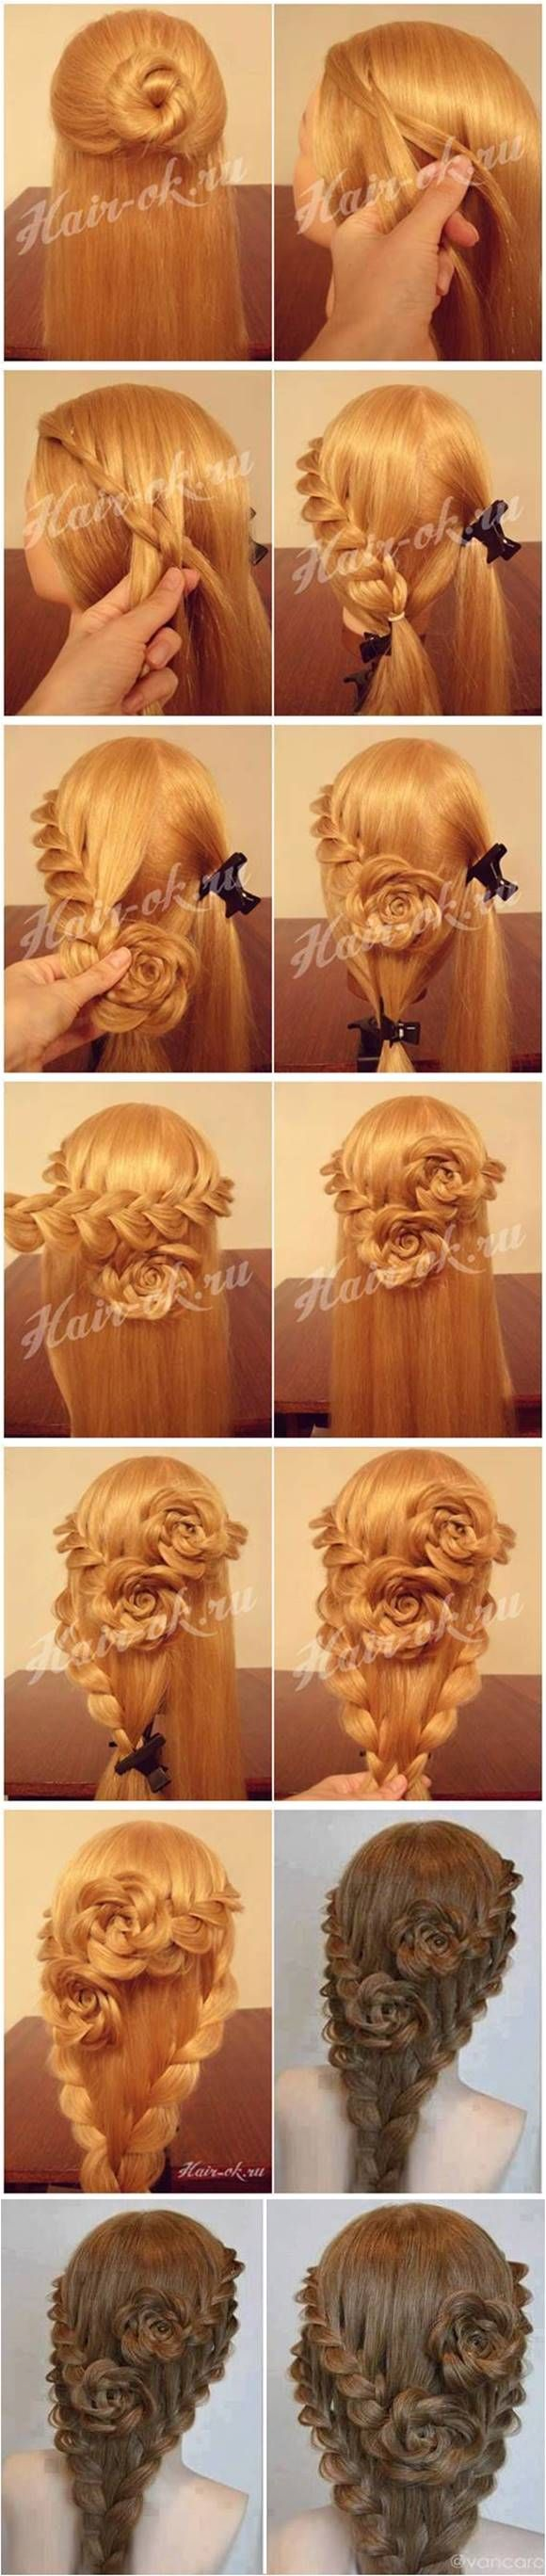 10 quick and easy hairstyles step by step the learnify - How To Diy Pretty Rose Braids Hairstyle